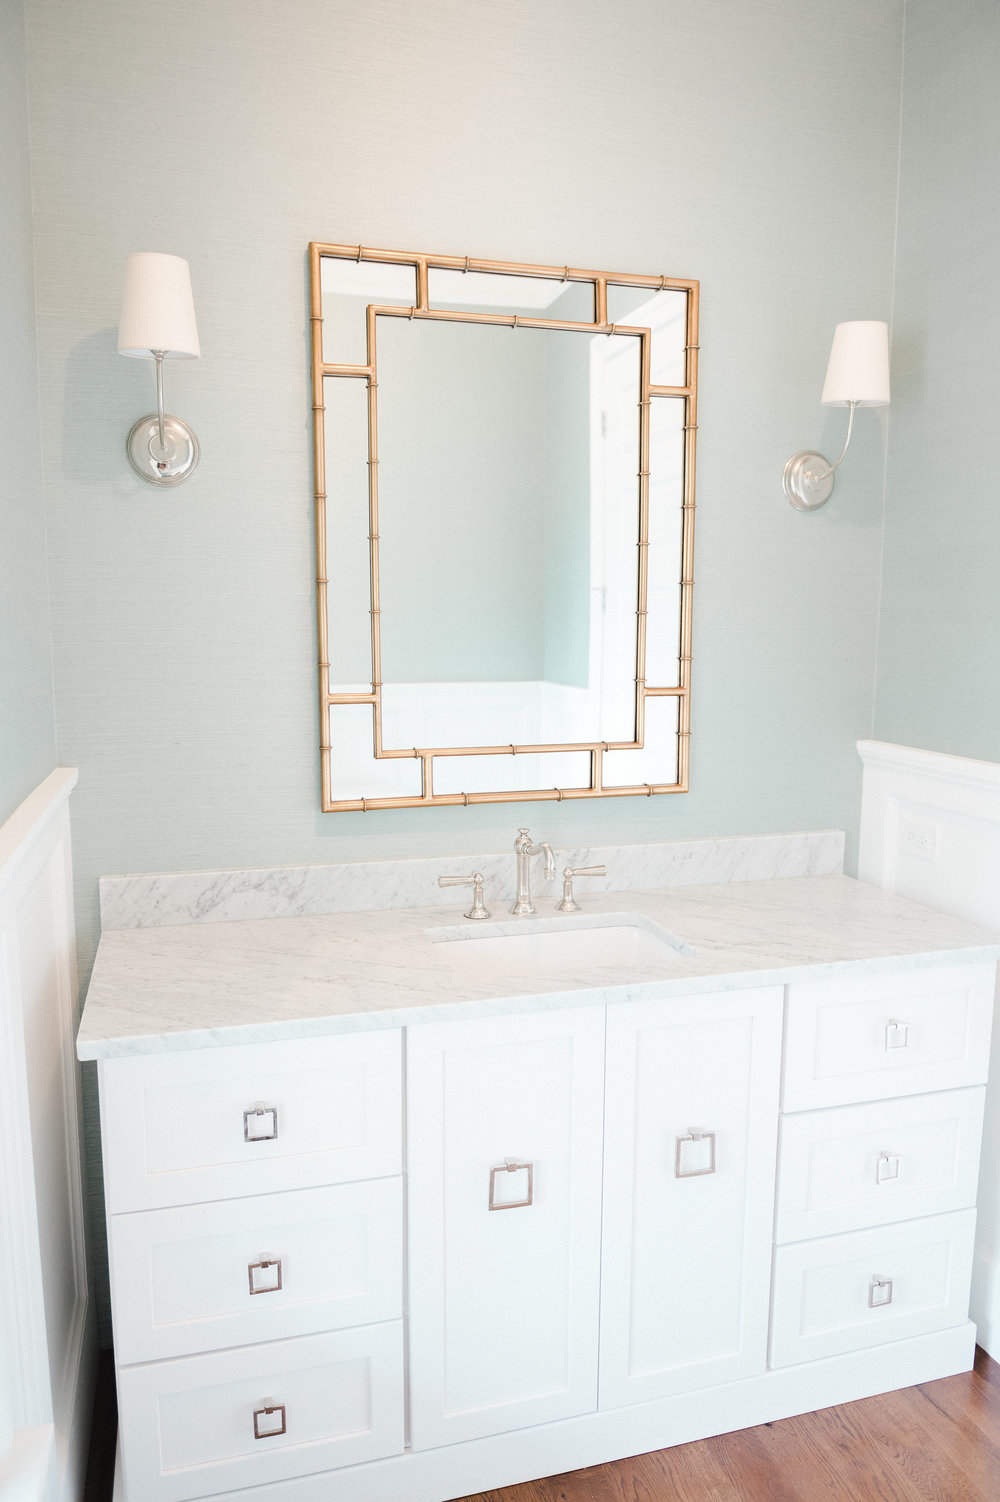 Bathroom sink with gold mirror and white drawers